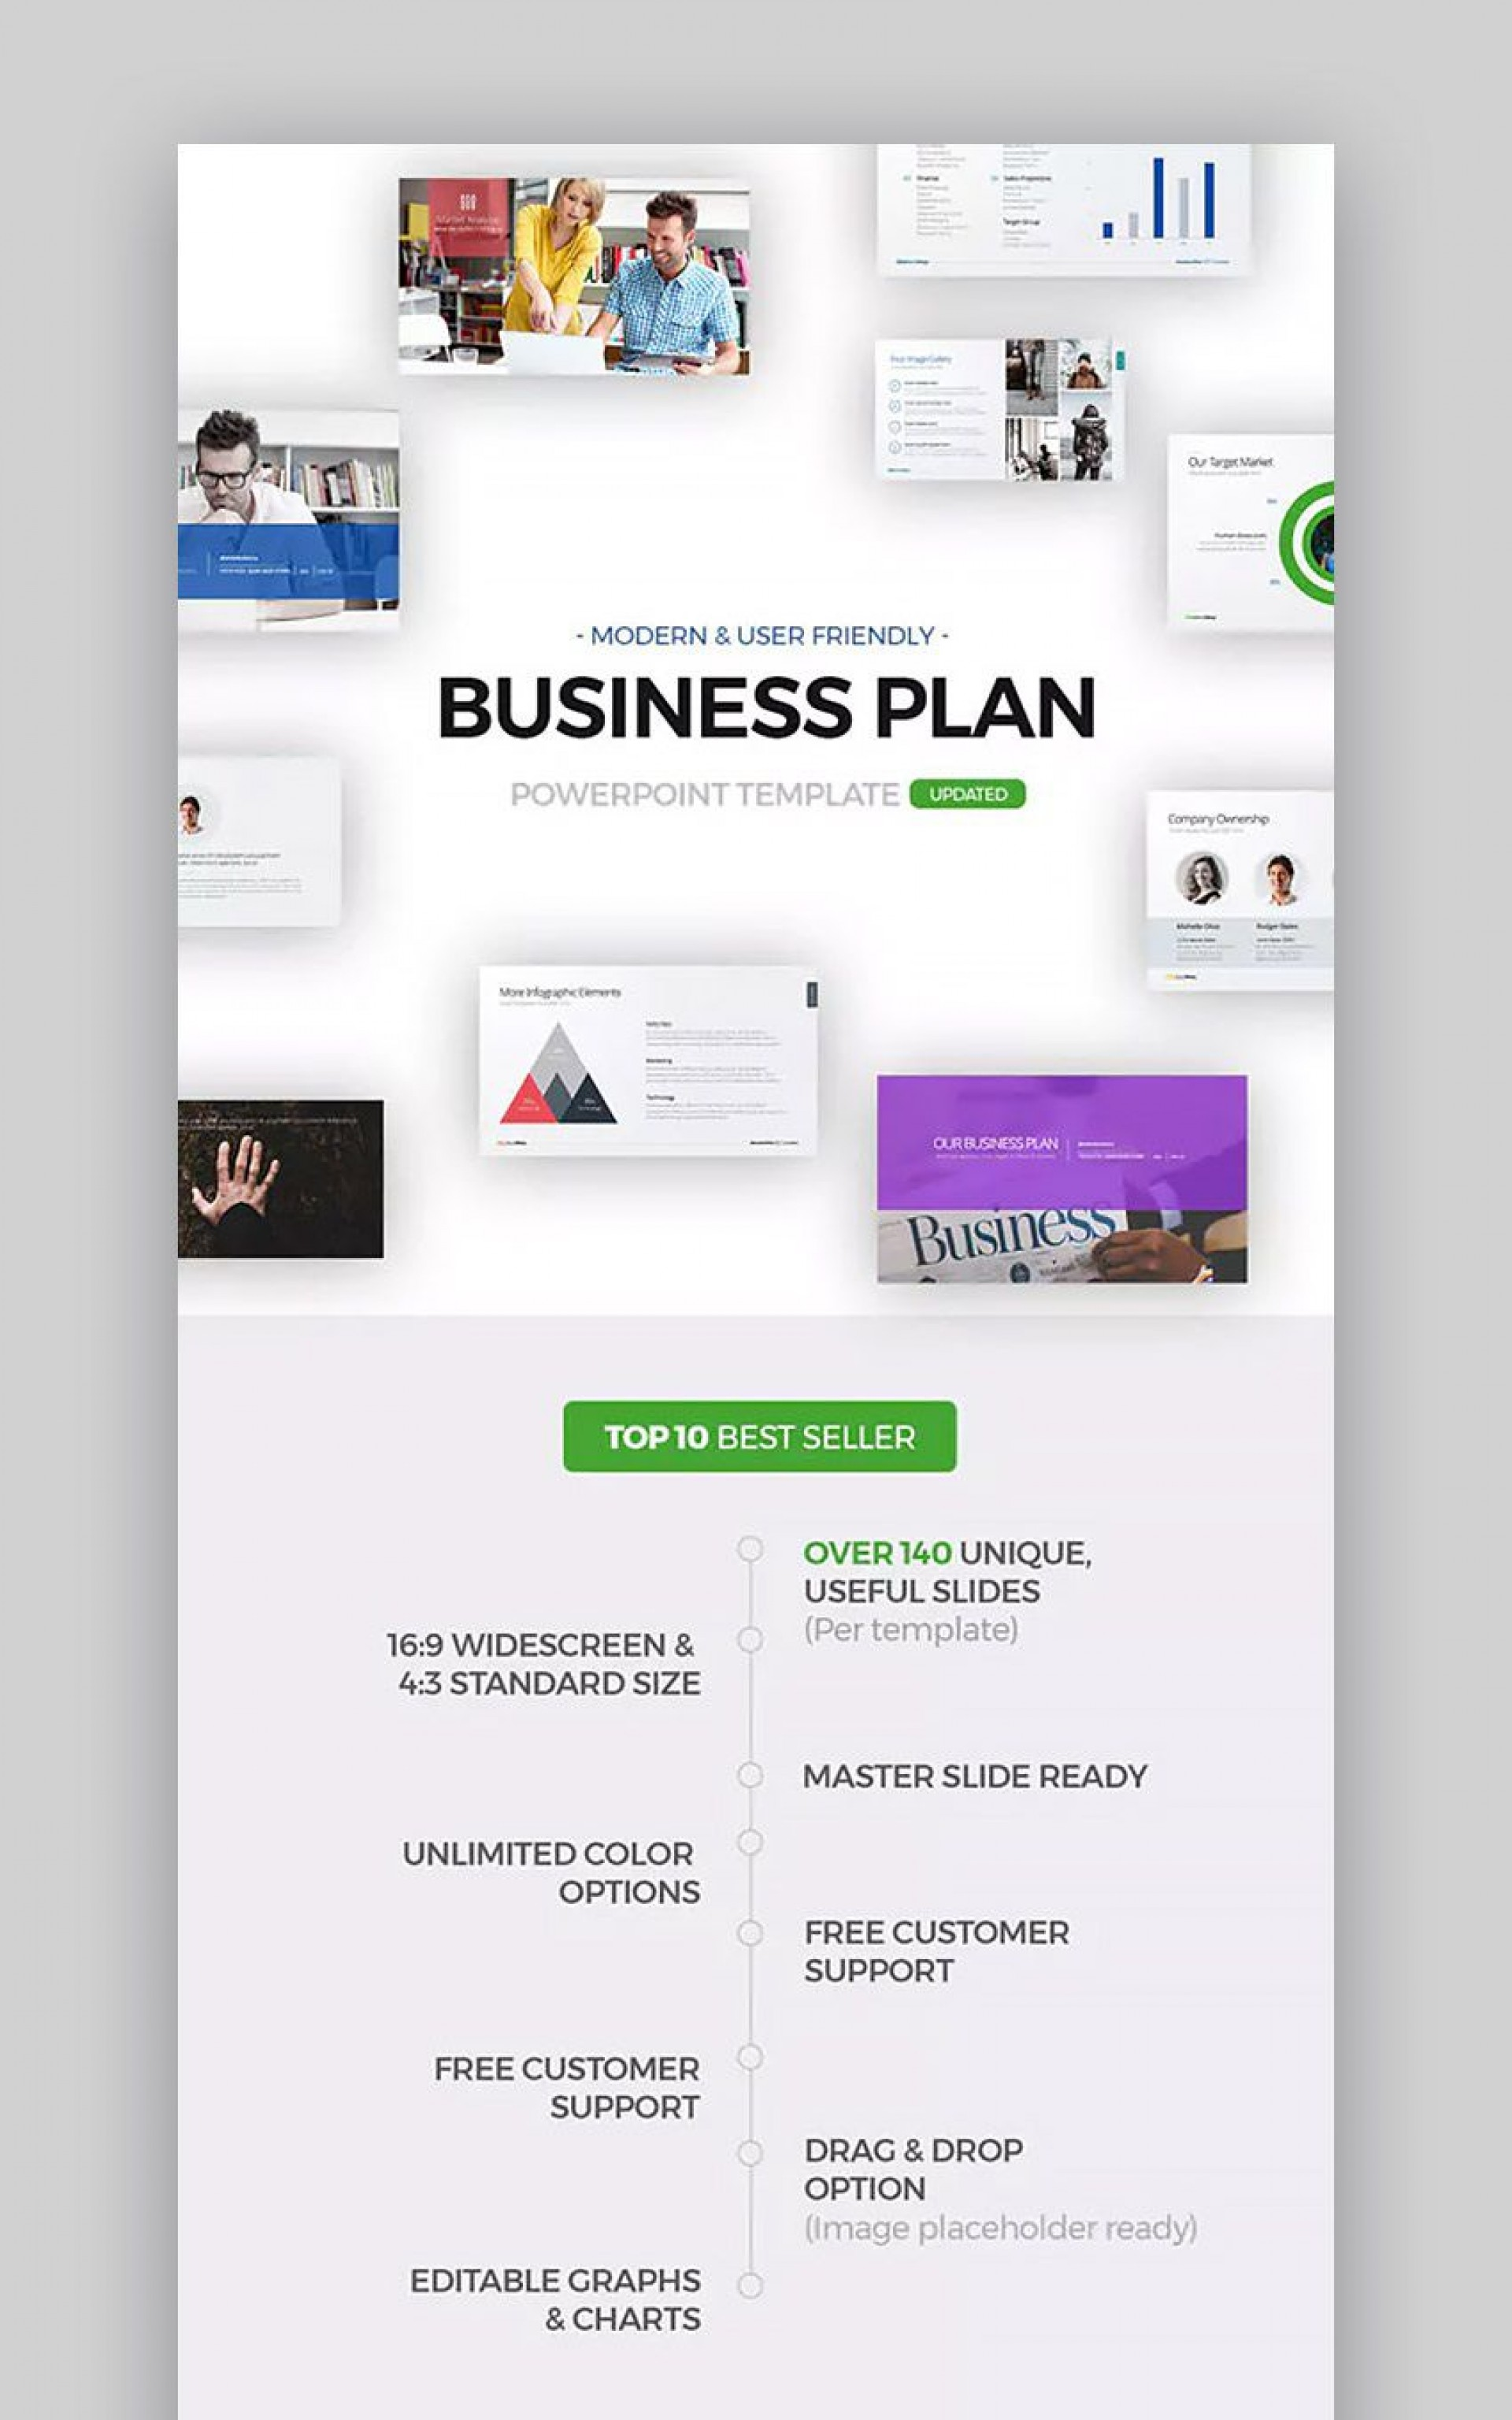 007 Wondrou Excel Busines Plan Template Free High Definition  Startup Continuity1920